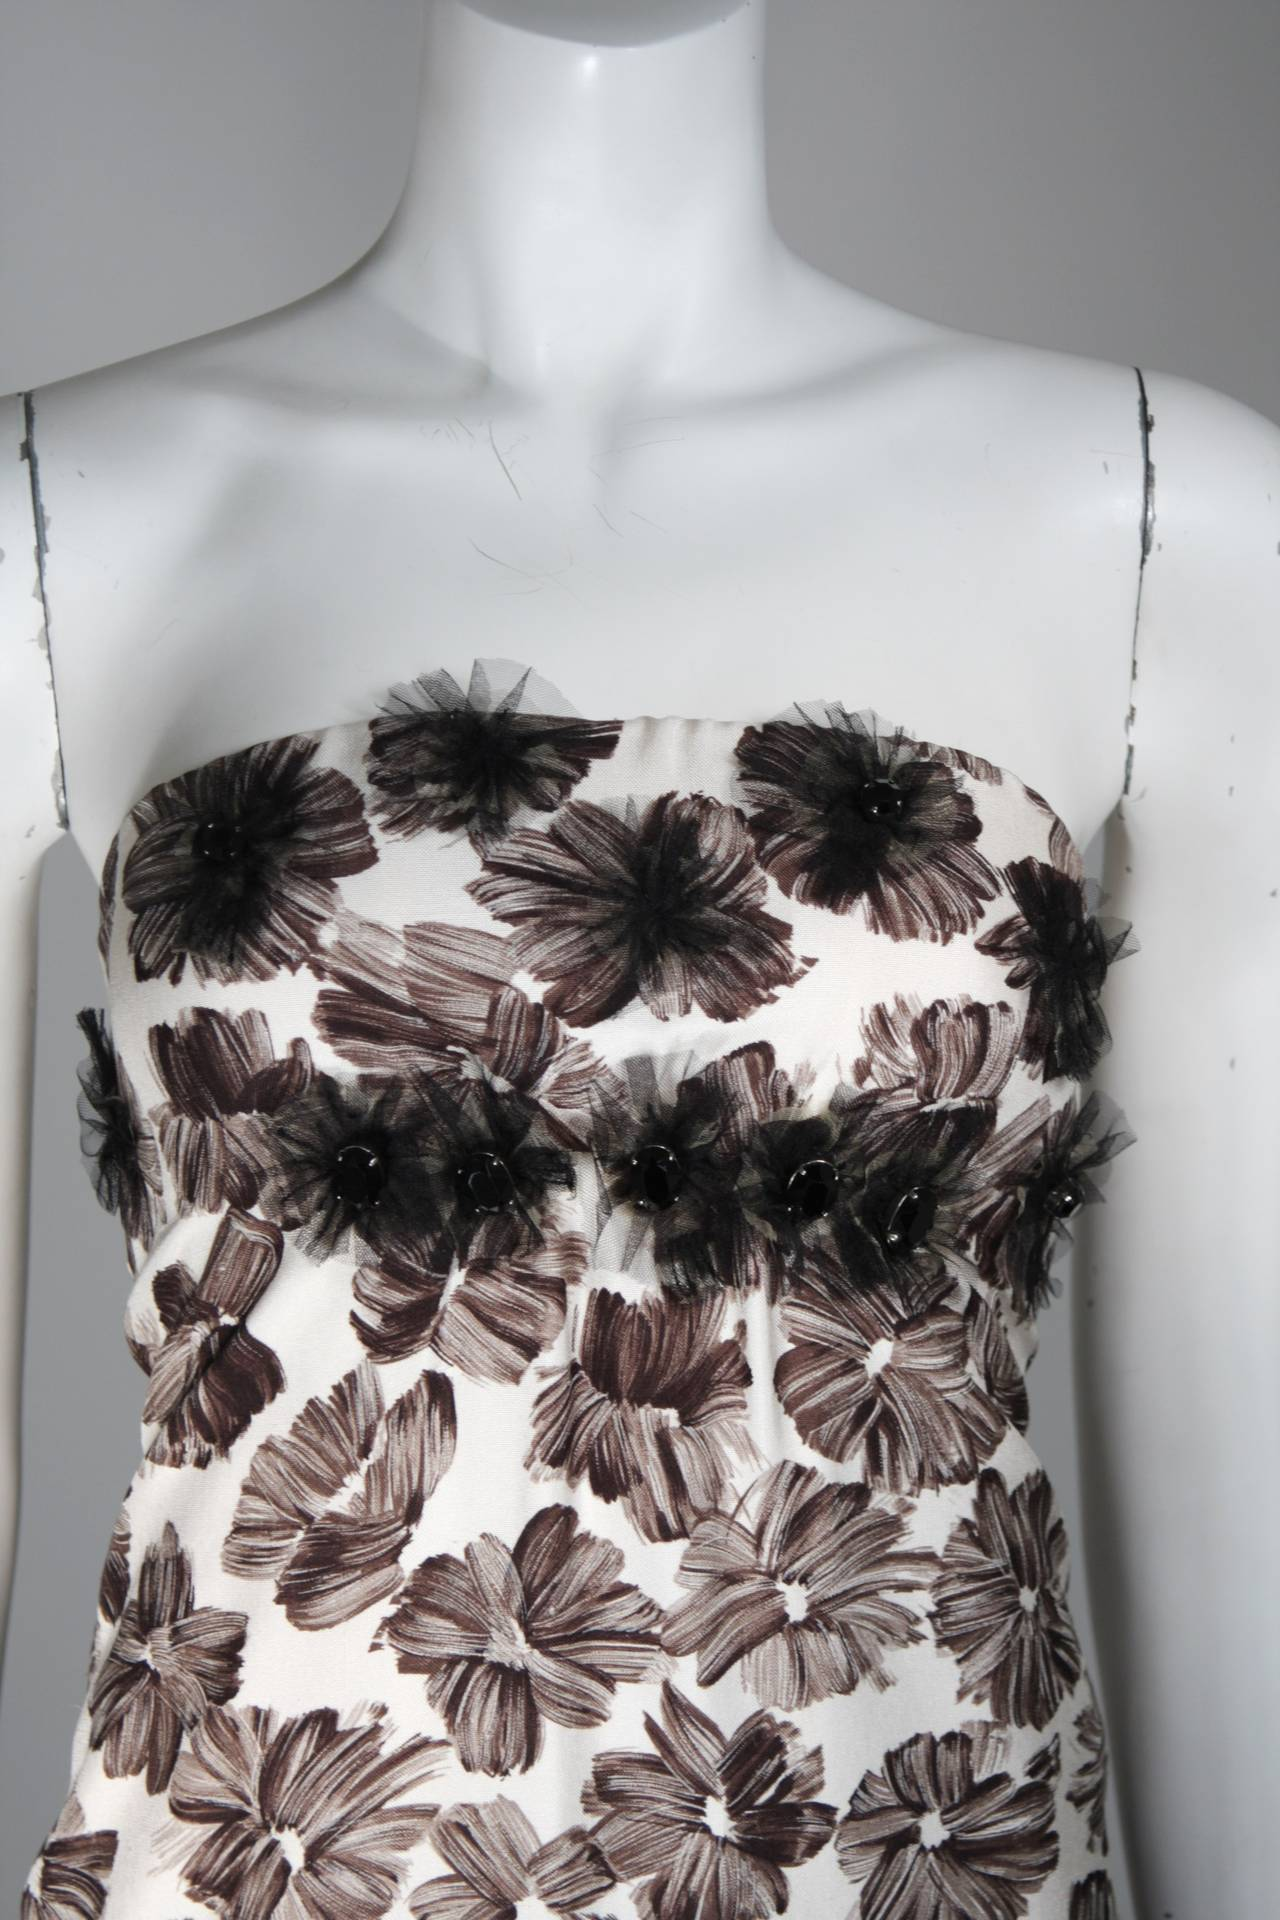 Gray GIAMBATTISTA VALLI White Strapless Floral Print Rhinestone Detail Dress Size 40 For Sale